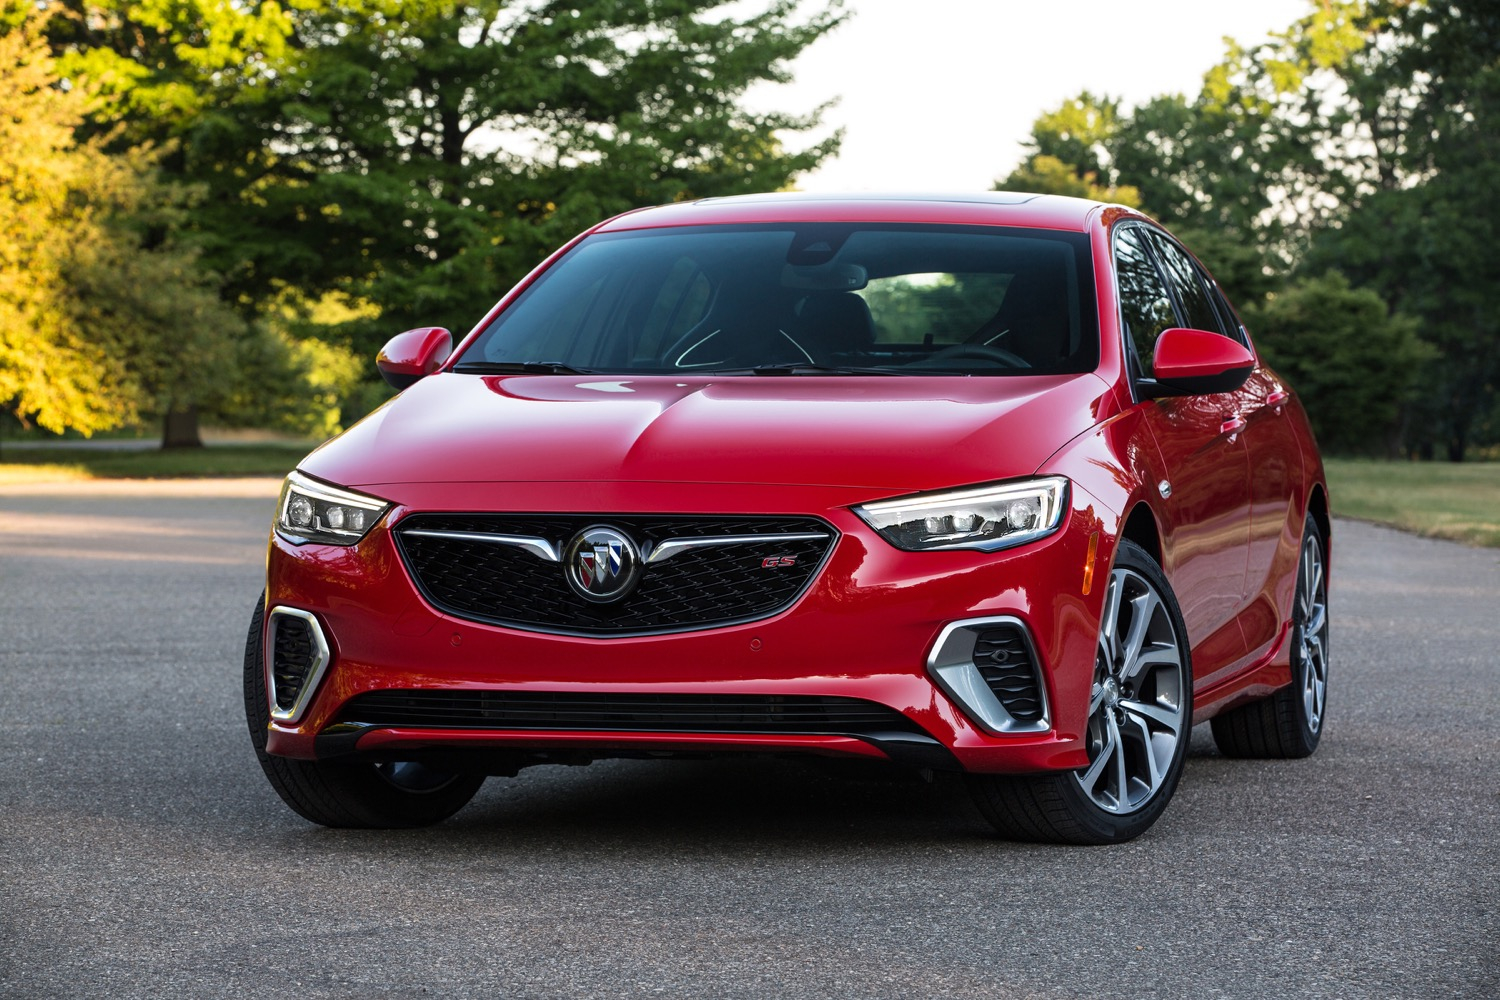 We Have Some Beef With This 2018 Buick Regal Gs Review | Gm 2022 Buick Regal Tourx Review, Specs, 0-60